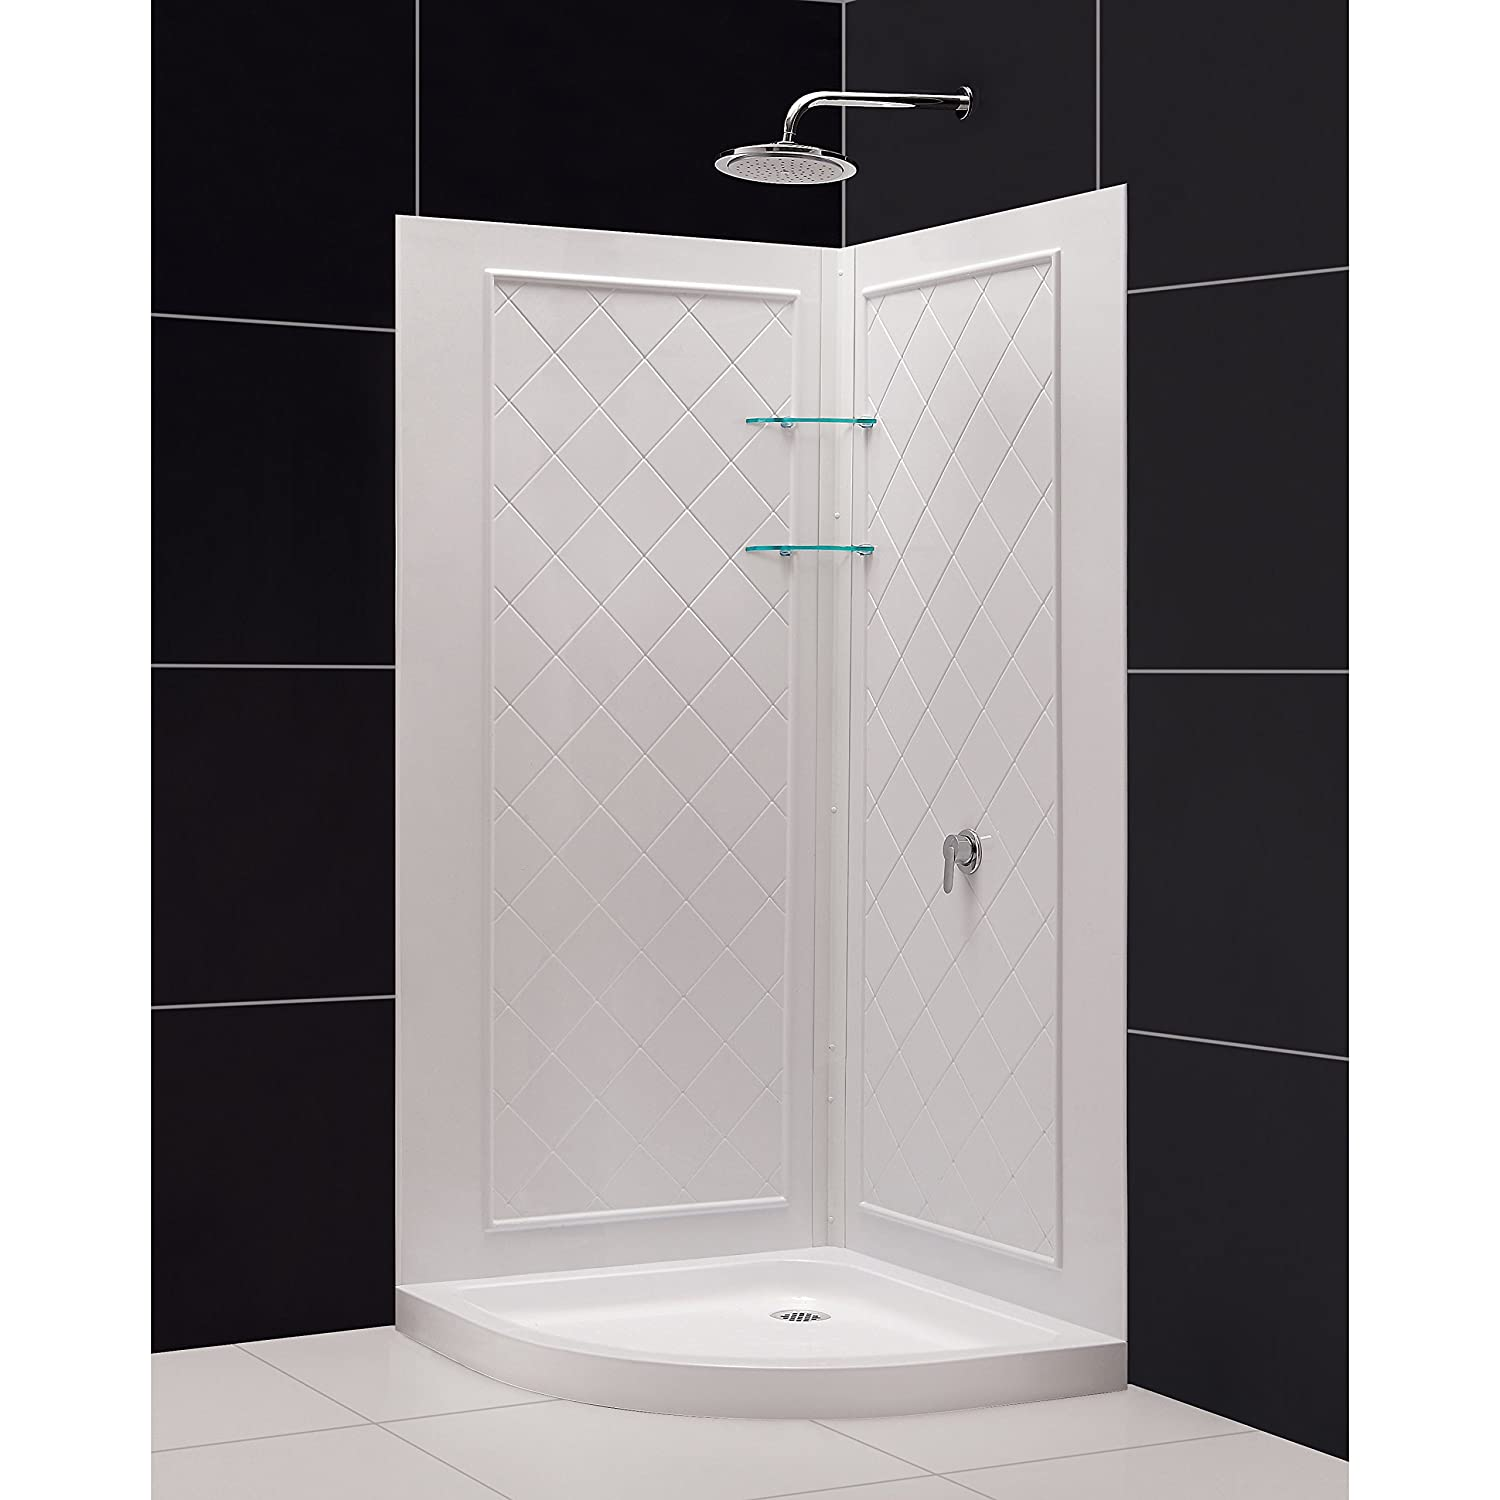 small corner shower kit. W Kit  with Corner Sliding Shower Enclosure in Chrome White Acrylic Base and Backwalls Doors Amazon com DreamLine Prime 33 D x